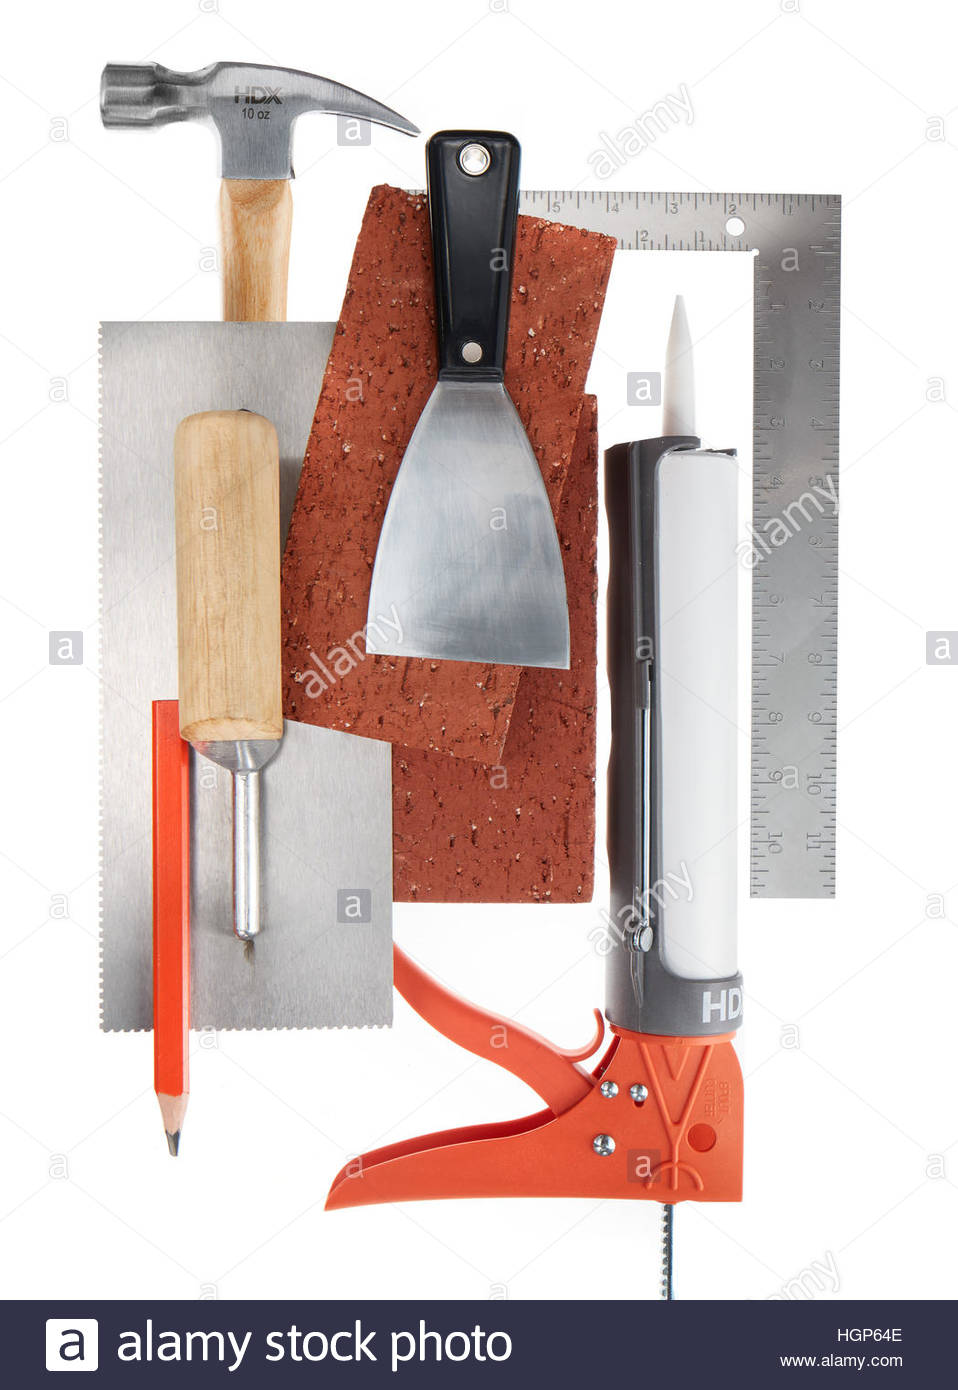 Masonry or Builders tools and materials on white background - Stock Image